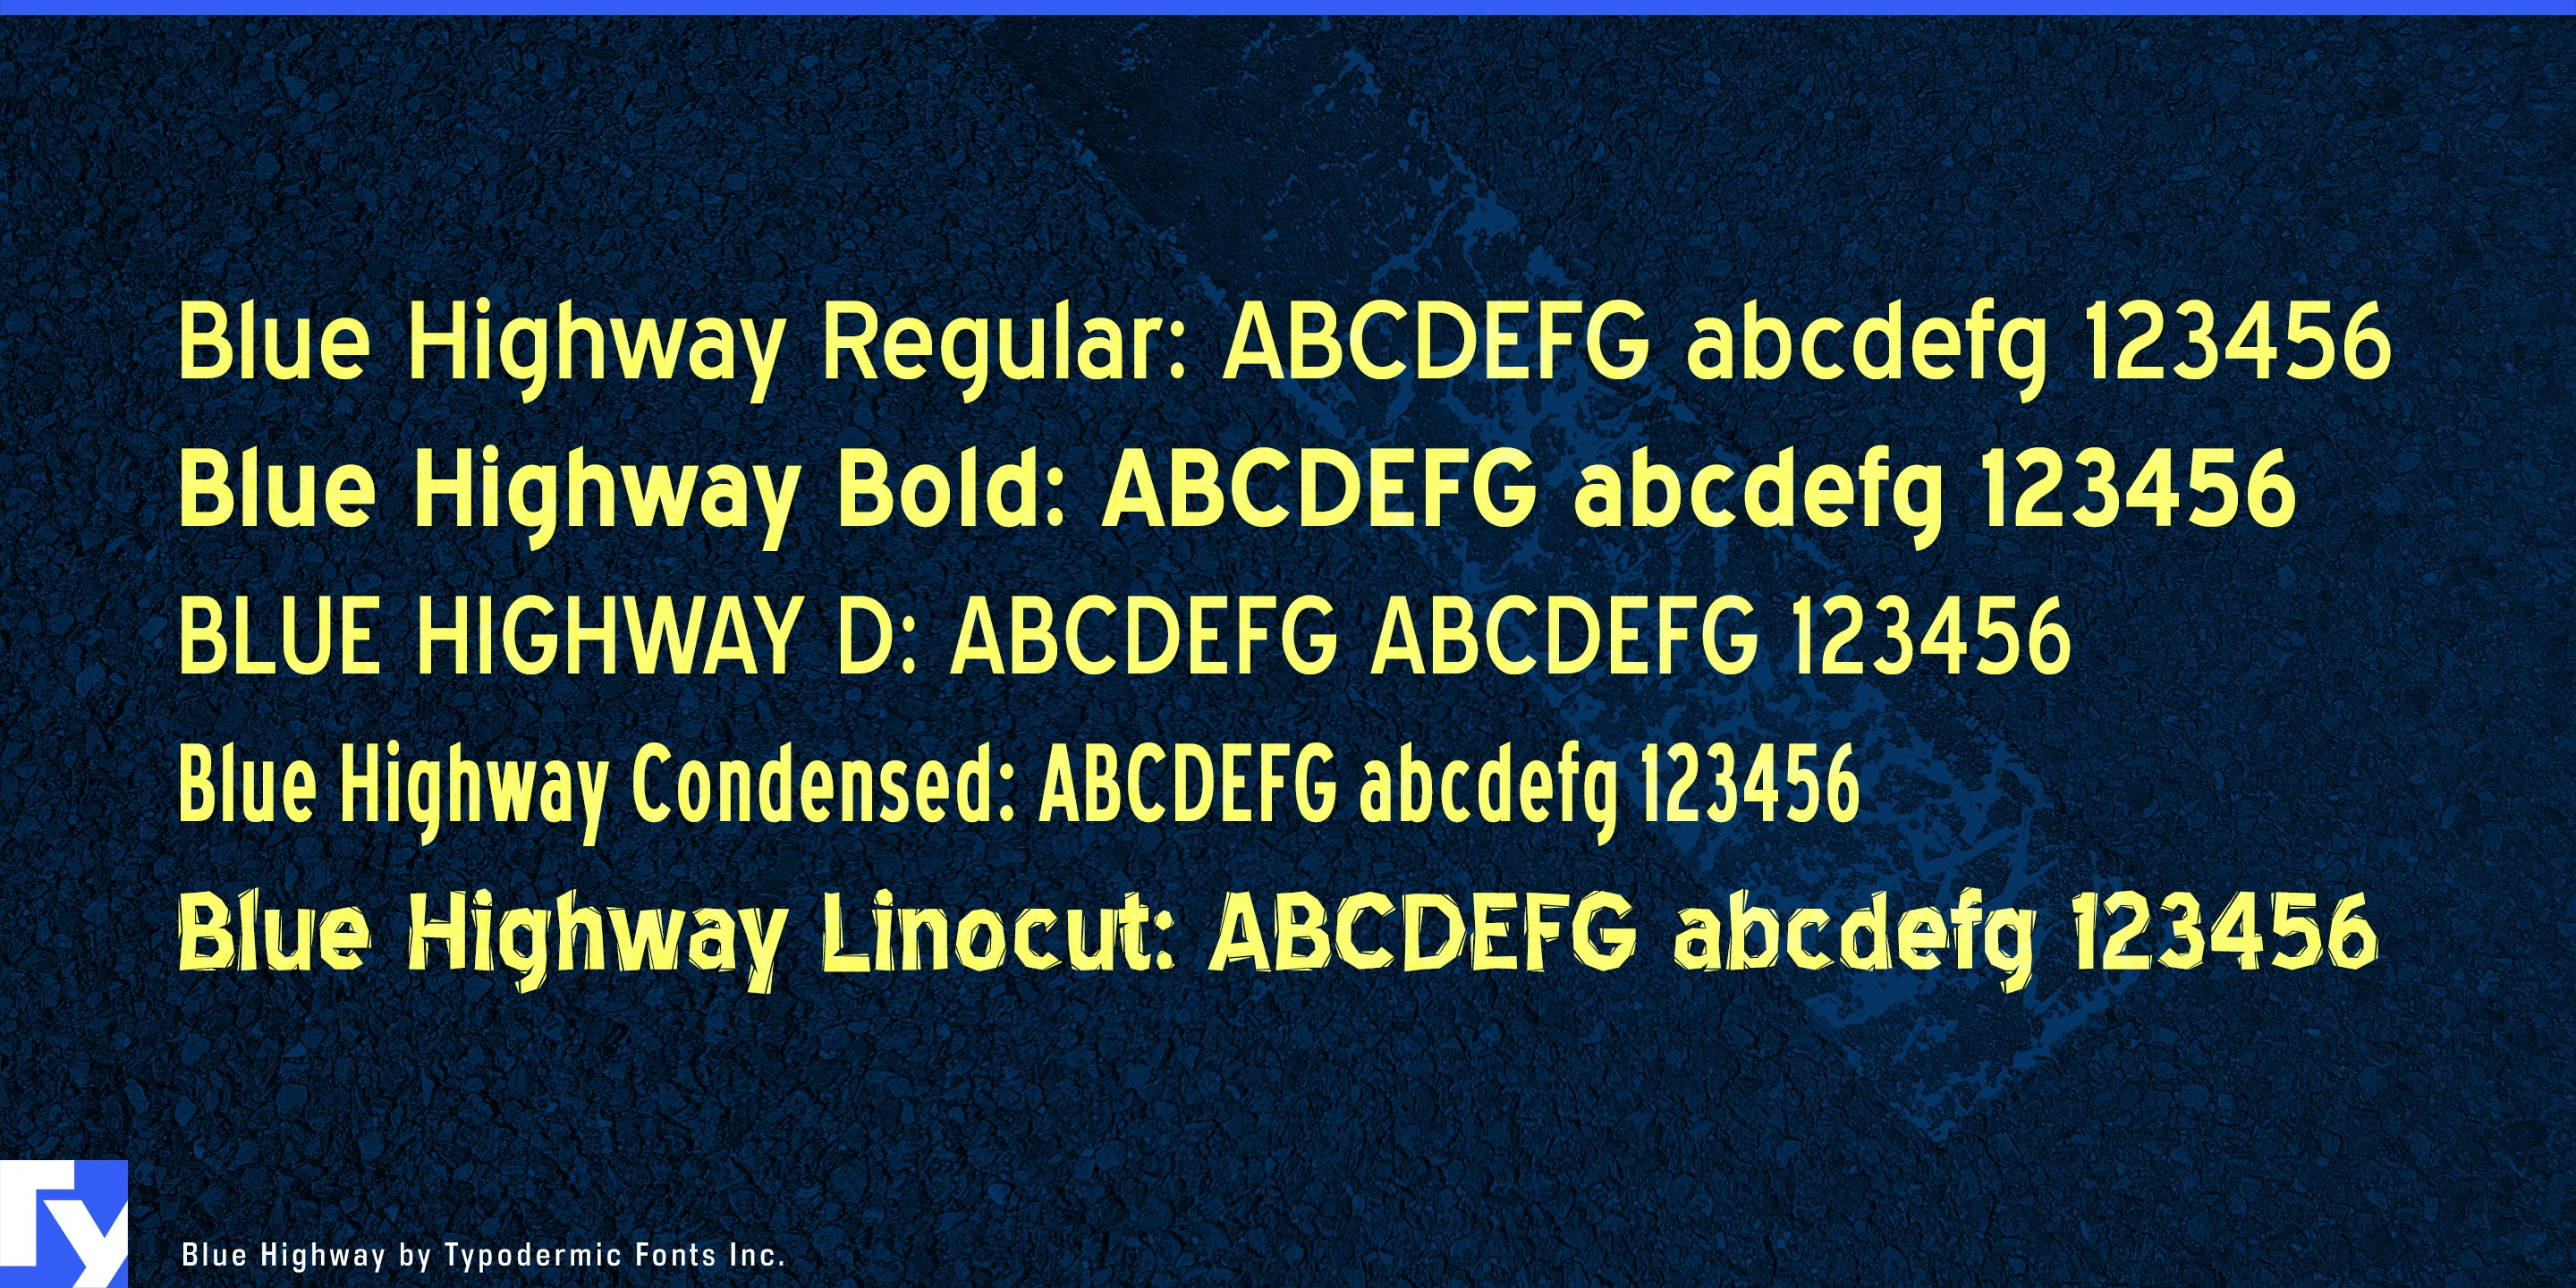 Blue Highway from Typodermic Fonts Inc.